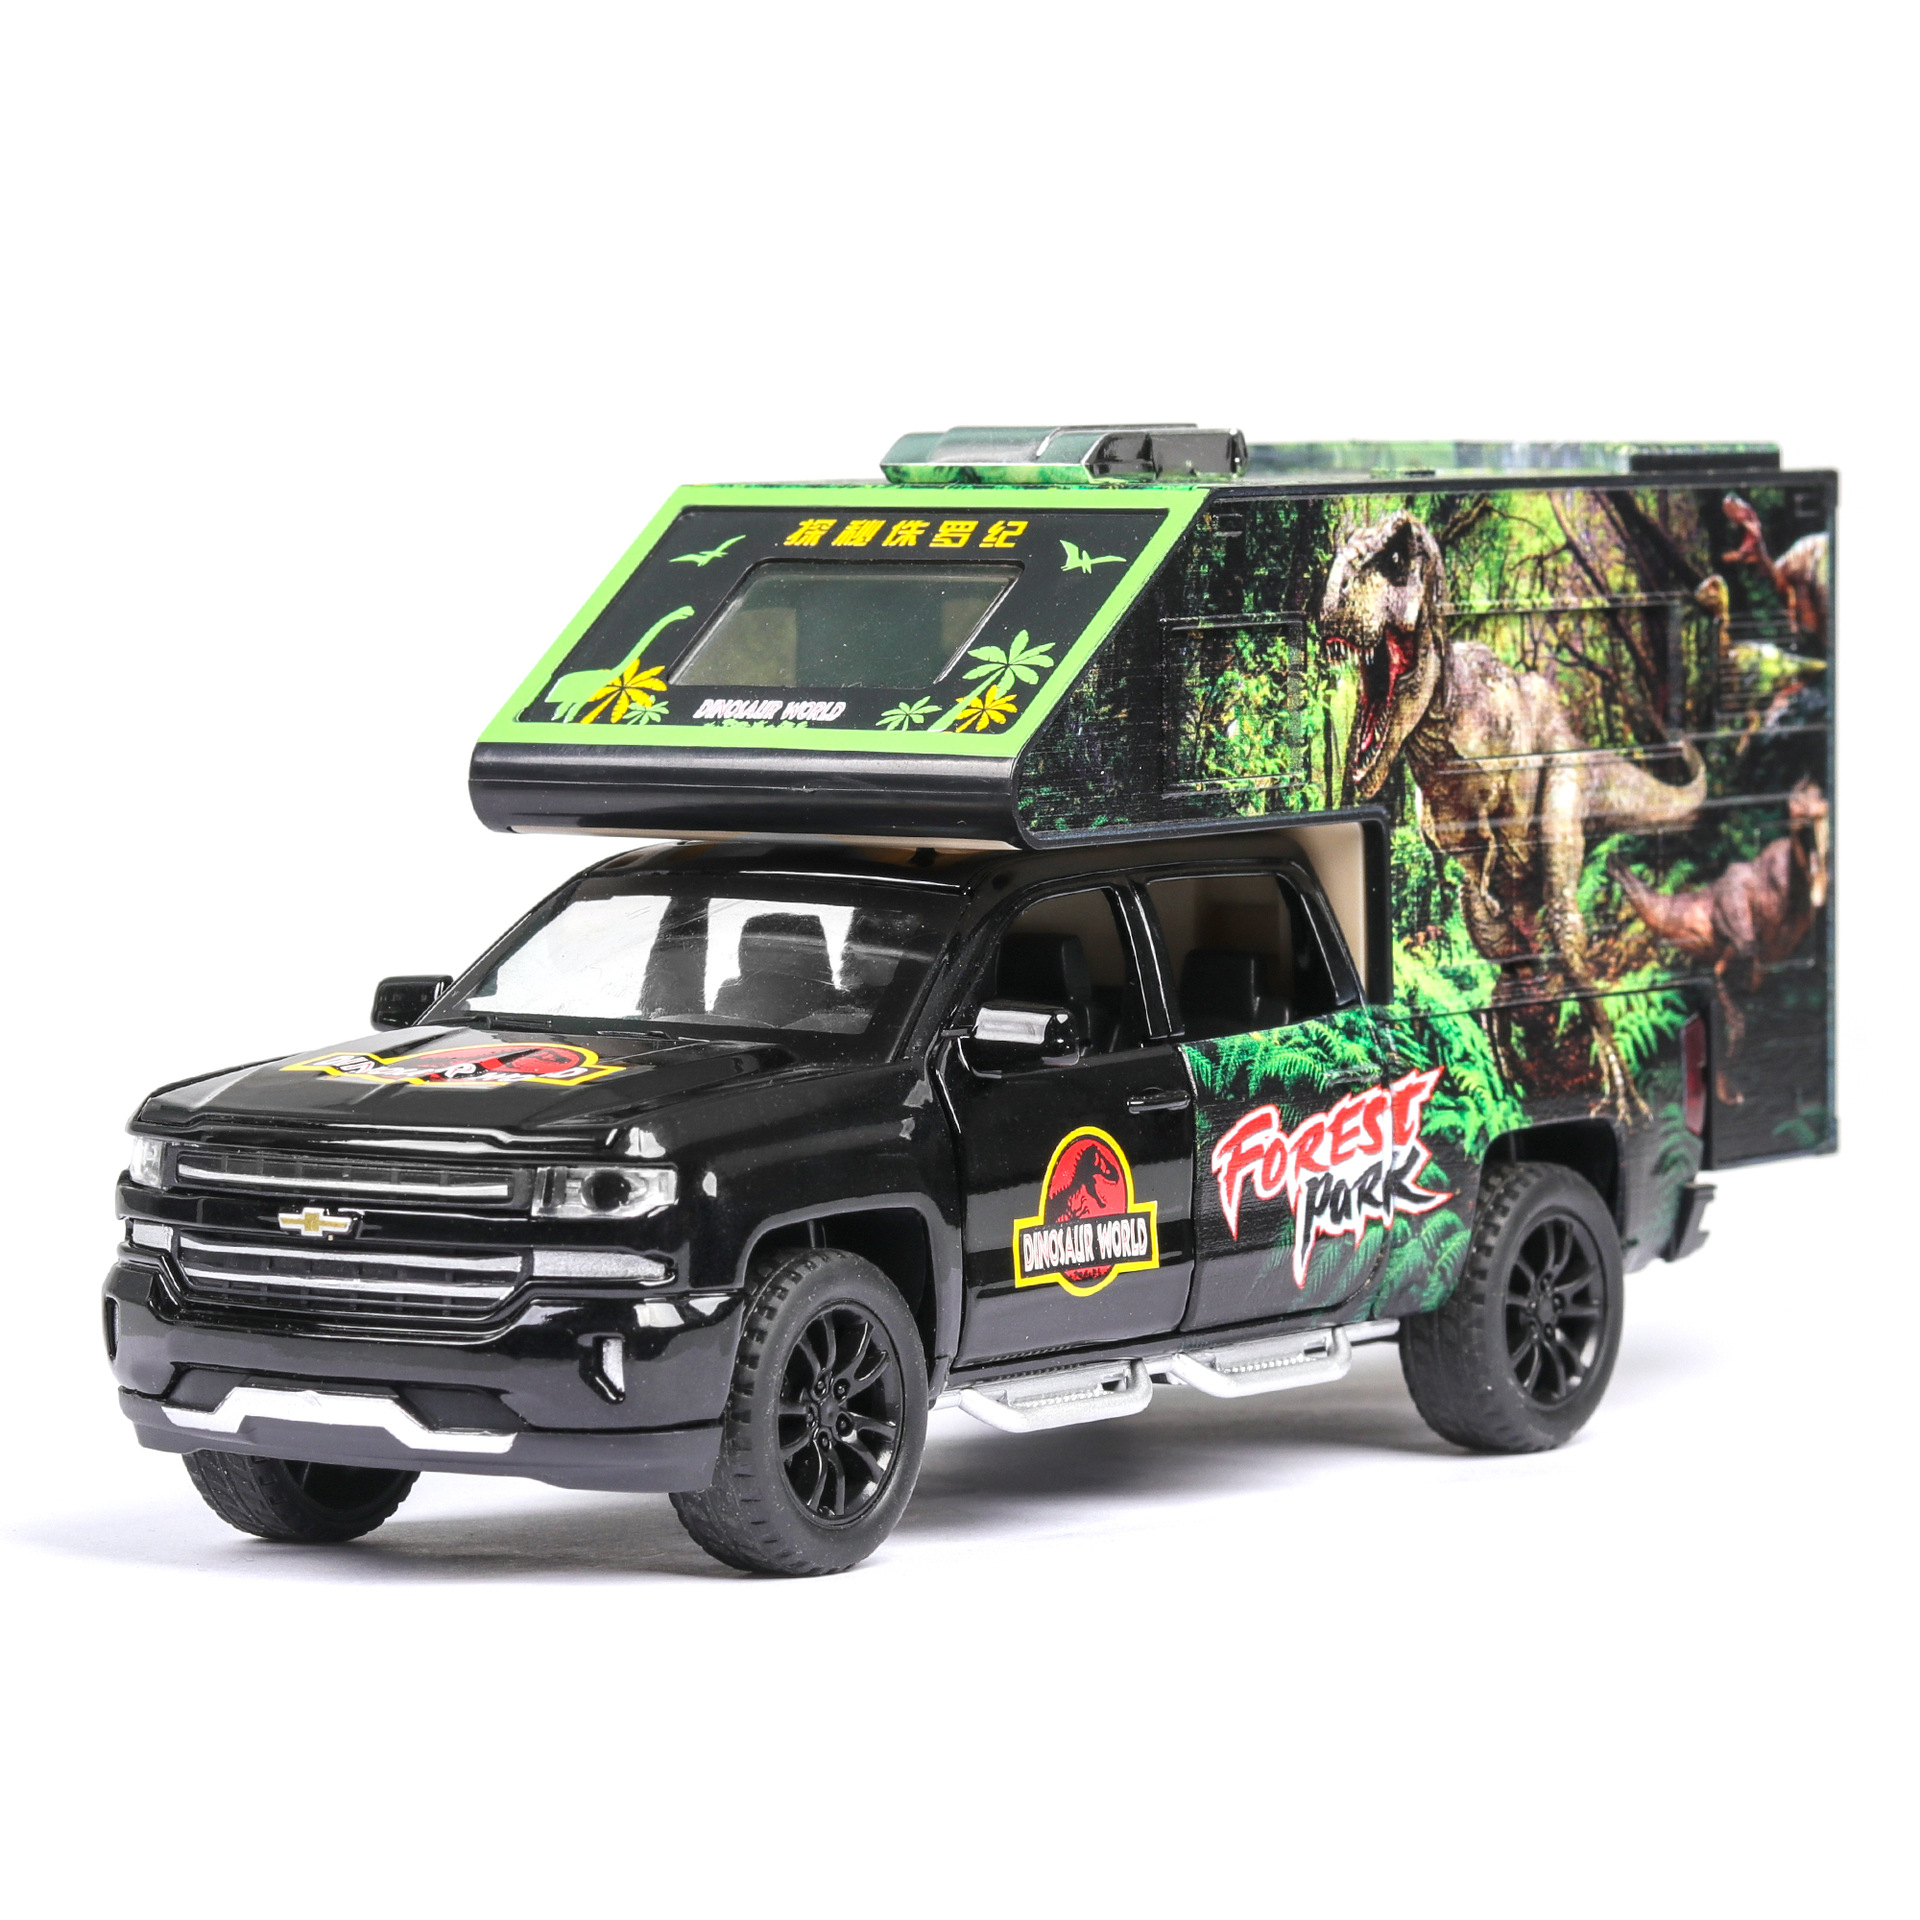 1:32 Diecast <font><b>Car</b></font> <font><b>Model</b></font> Metal Suv Vehicle Simulation Dinosaur Overlord Toy <font><b>Car</b></font> Plastic <font><b>Wheels</b></font> Sound And Light Pull Back <font><b>Car</b></font> Gift image